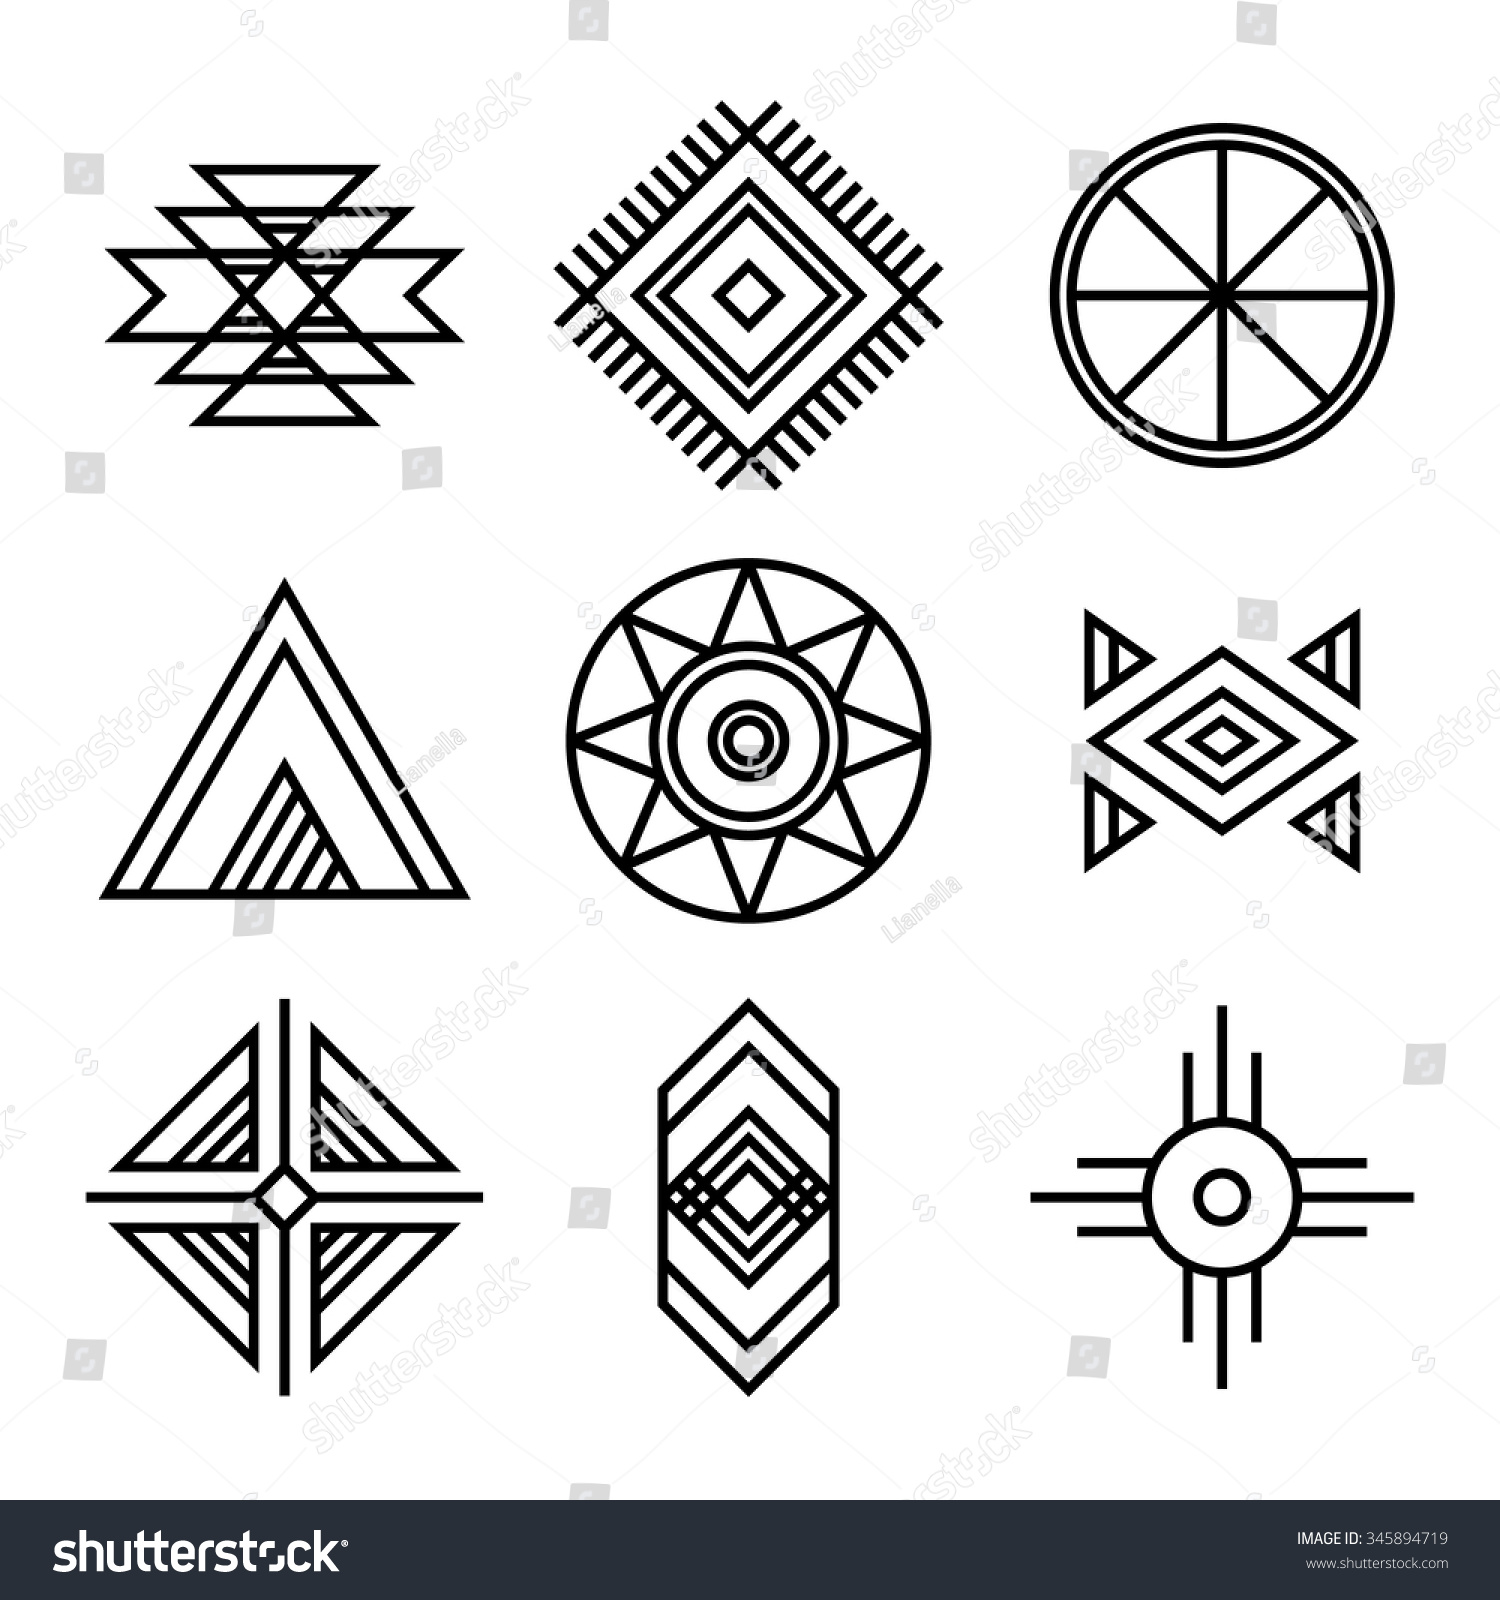 Lumbee indian symbols image collections symbols and meanings crow indians symbol jim crow laws wikipedia biocorpaavc buycottarizona Gallery